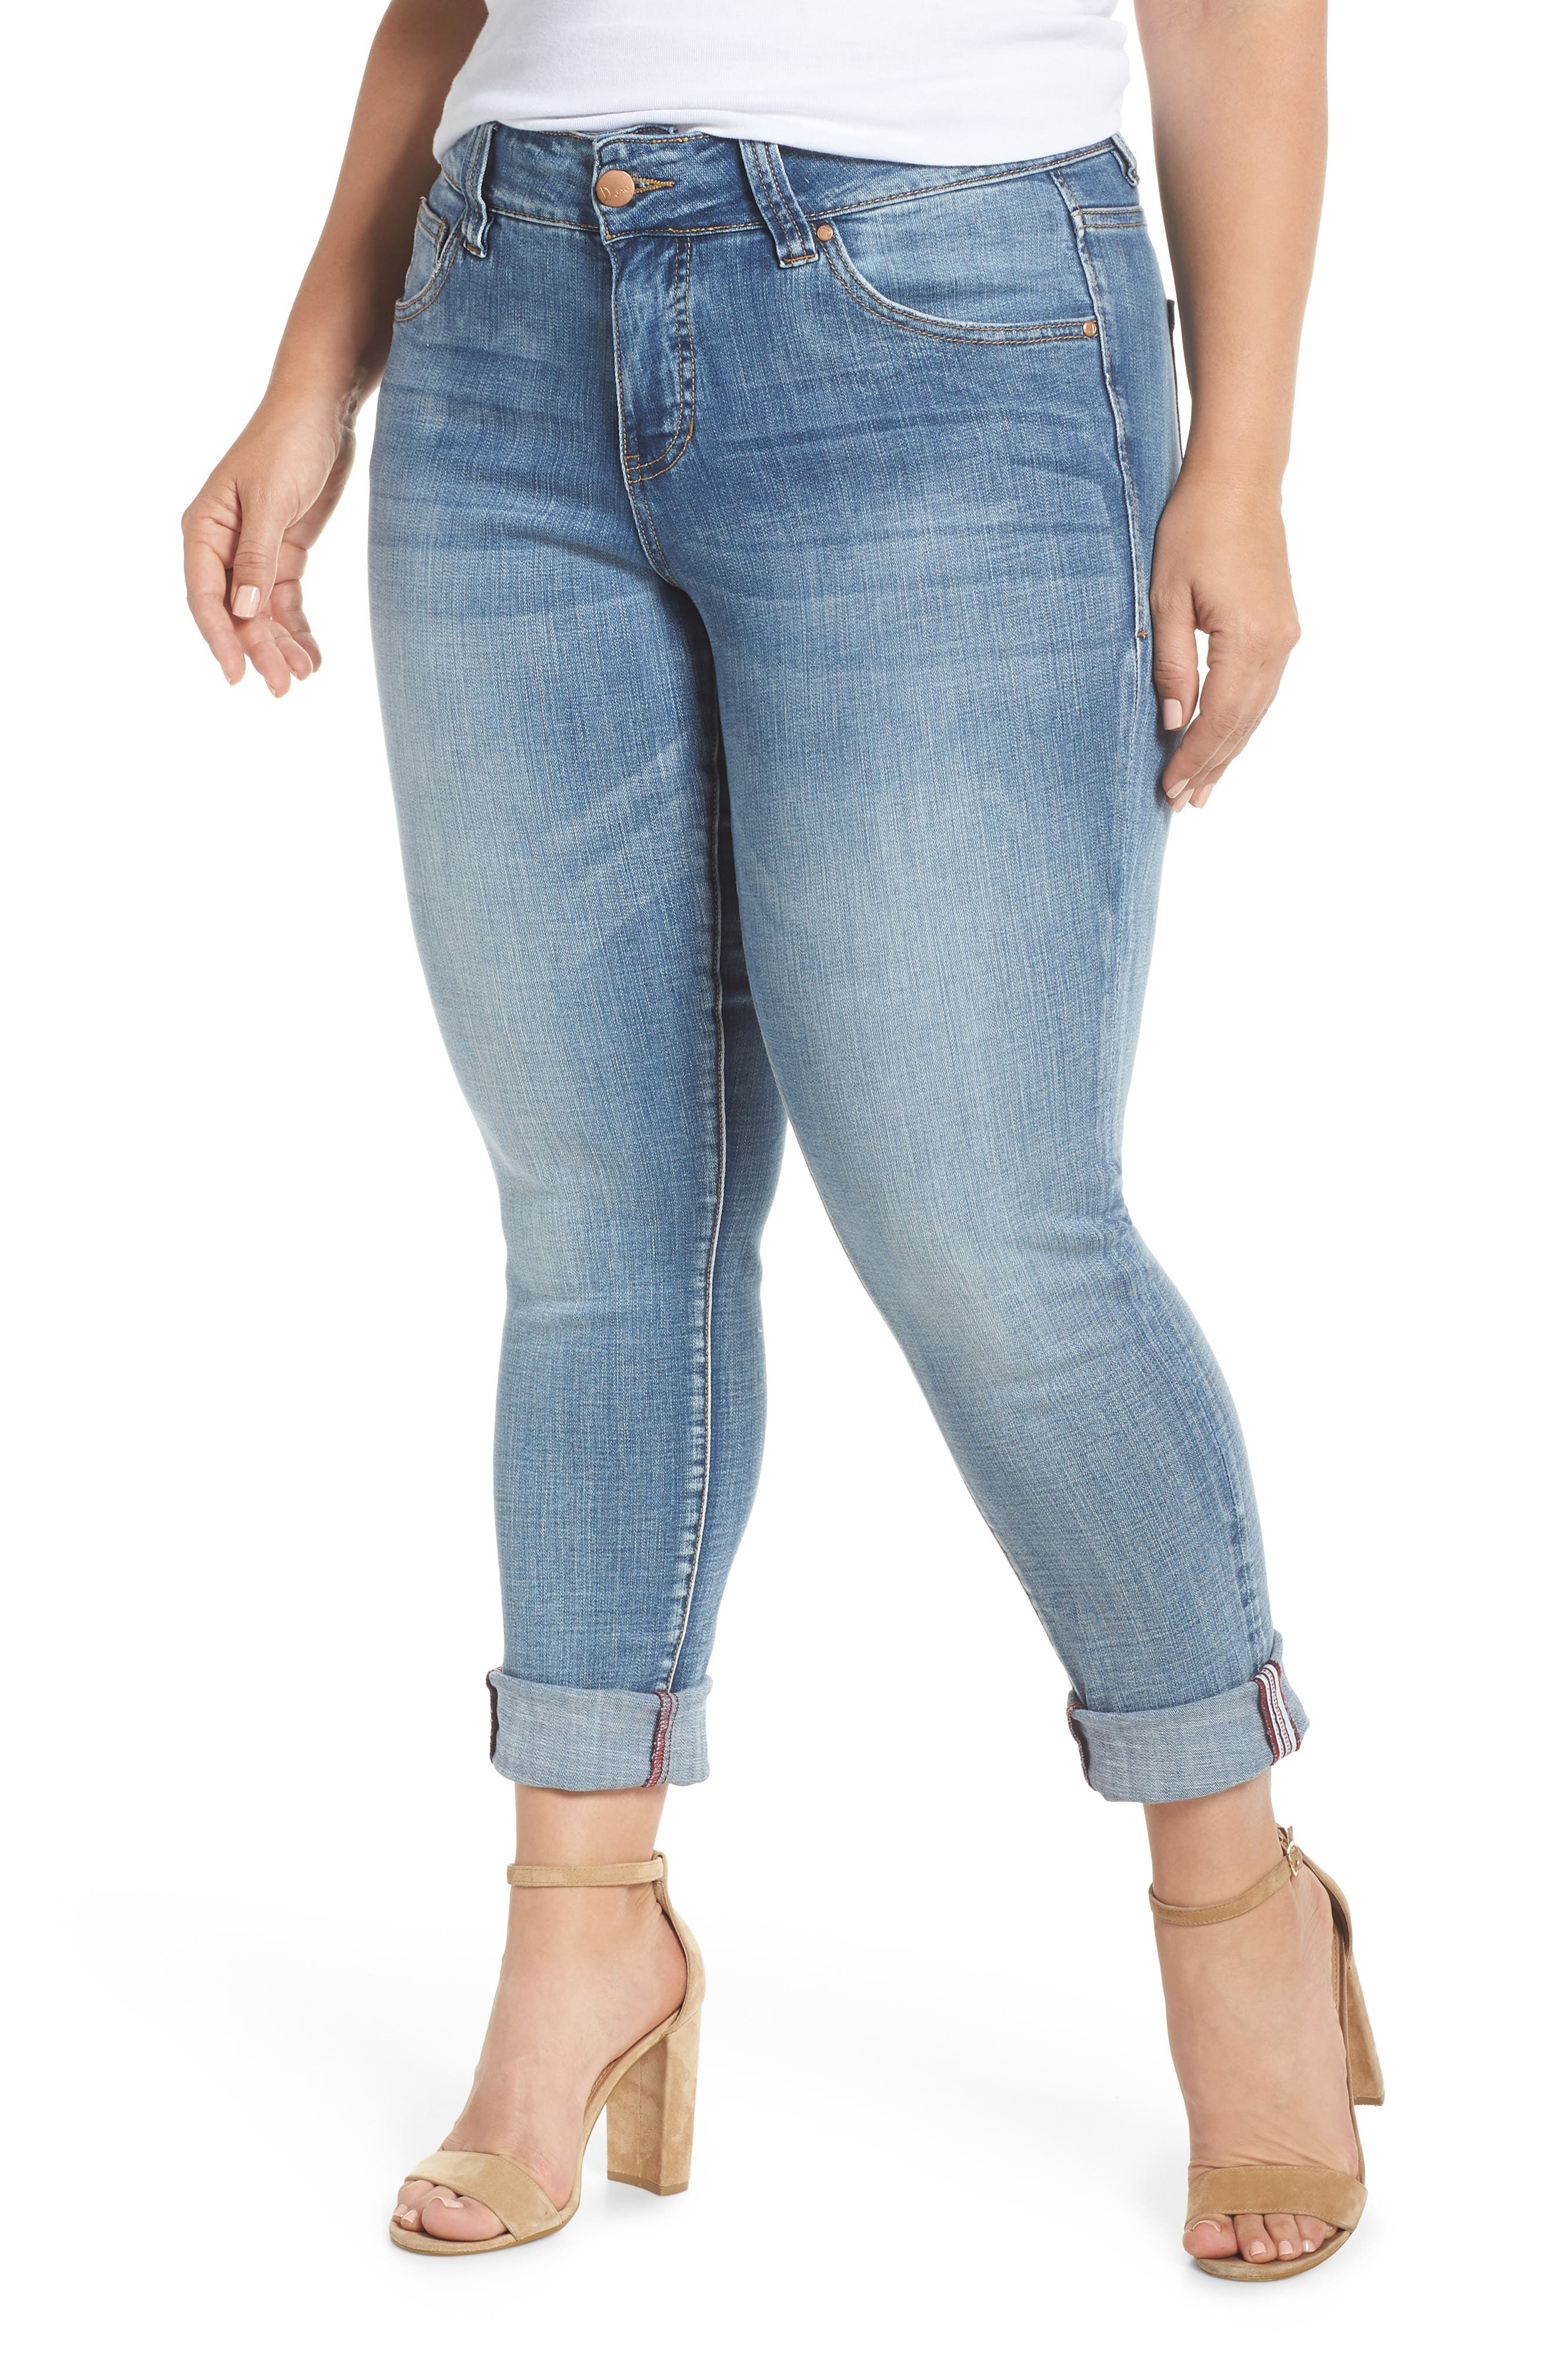 Carter Girlfriend Jeans,                             Main thumbnail 1, color,                             Med Indigo